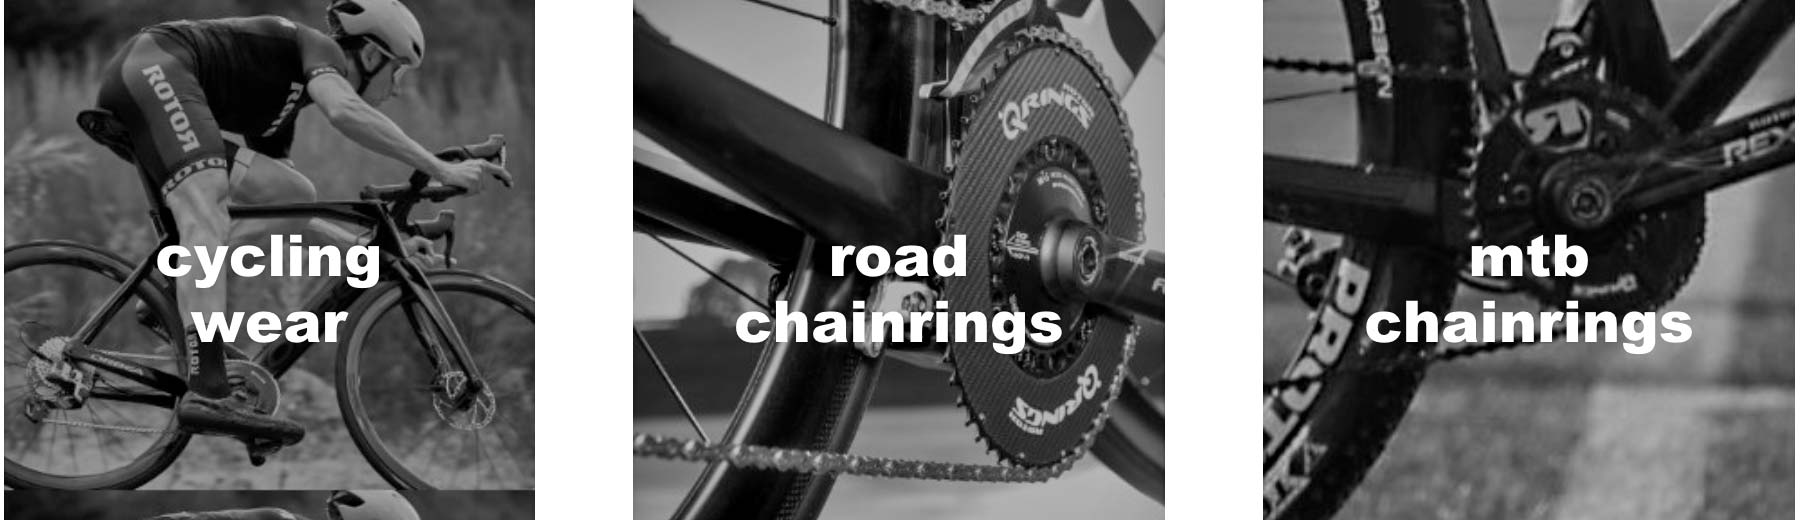 Rotor Outlet, discounted marked-down powermeters cranksets chainrings Qrings, chainrings